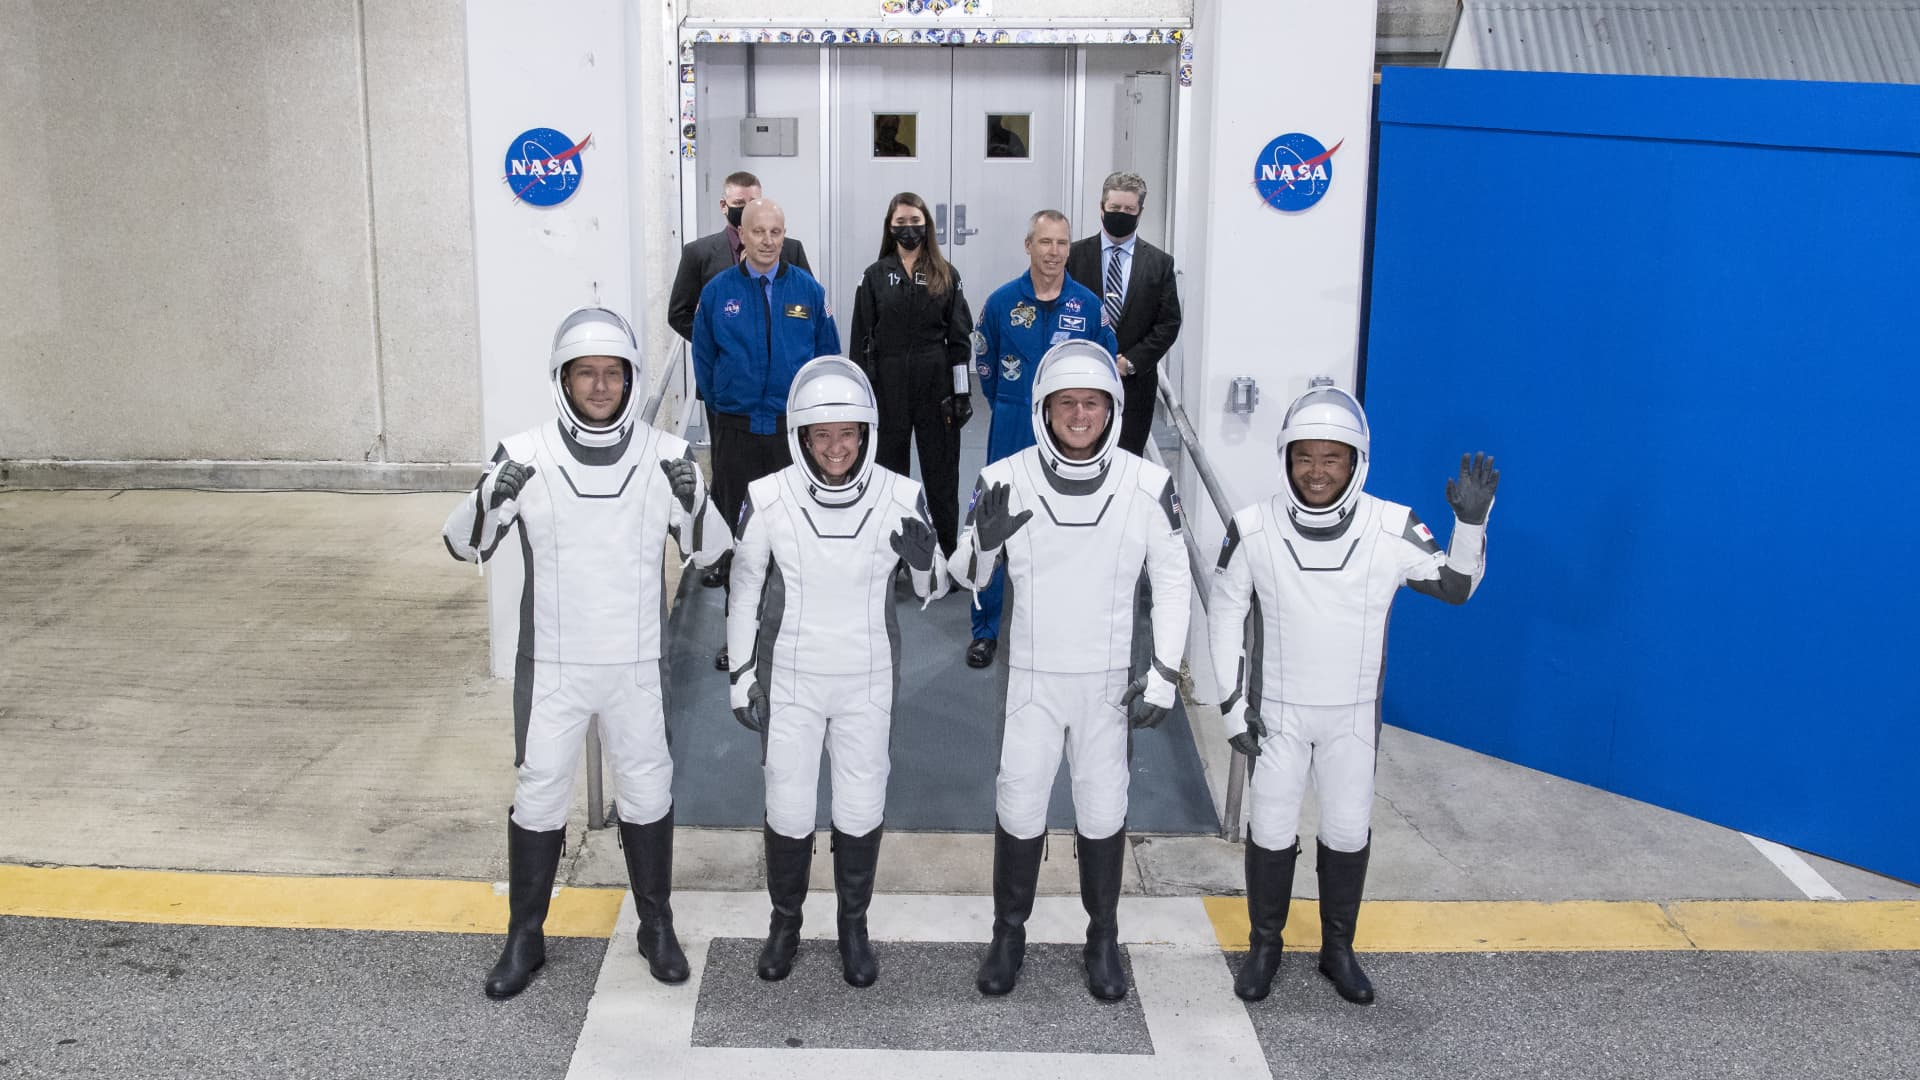 In this handout image provided by NASA, (L-R) ESA (European Space Agency) astronaut Thomas Pesquet, NASA astronauts Megan McArthur and Shane Kimbrough, and Japan Aerospace Exploration Agency (JAXA) astronaut Akihiko Hoshide, wearing SpaceX spacesuits, prepare to depart the Neil A. Armstrong Operations and Checkout Building for Launch Complex 39A to board the SpaceX Crew Dragon spacecraft for the SpaceX Crew-2 mission at NASA's Kennedy Space Center on April 23, 2021, in Cape Canaveral, Florida.